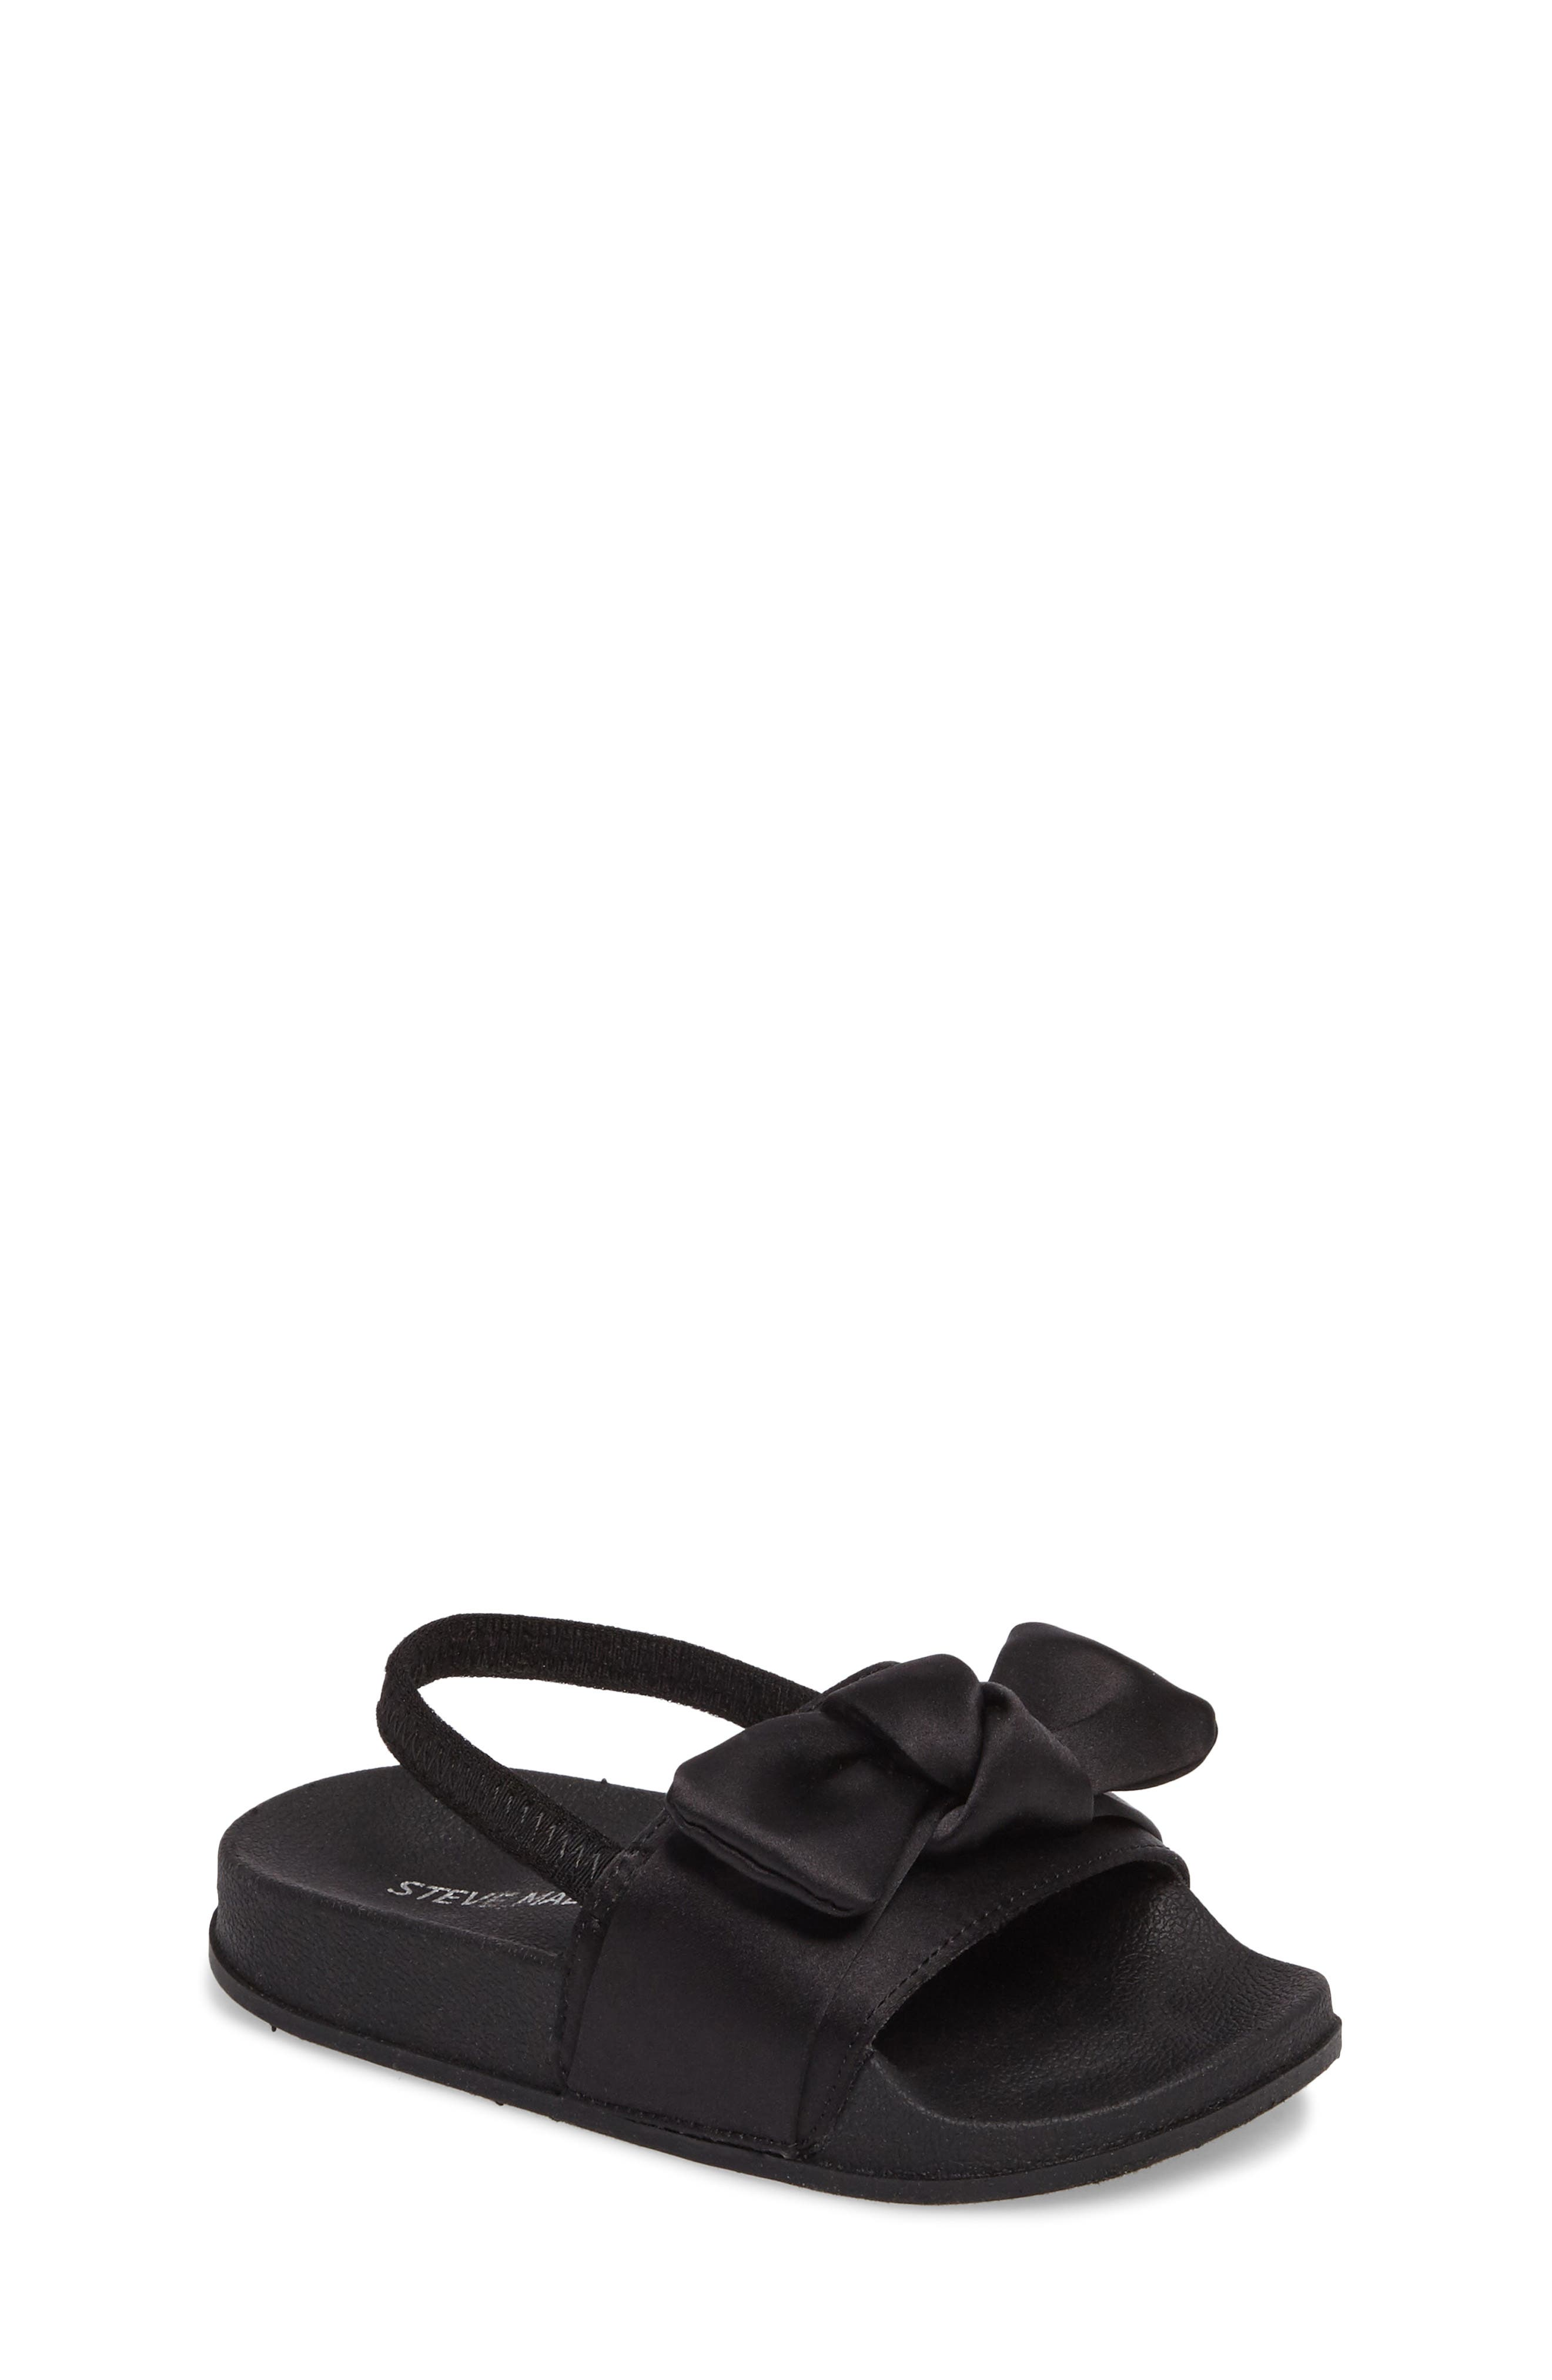 Tsilky Knotted Slide Sandal,                         Main,                         color, 007